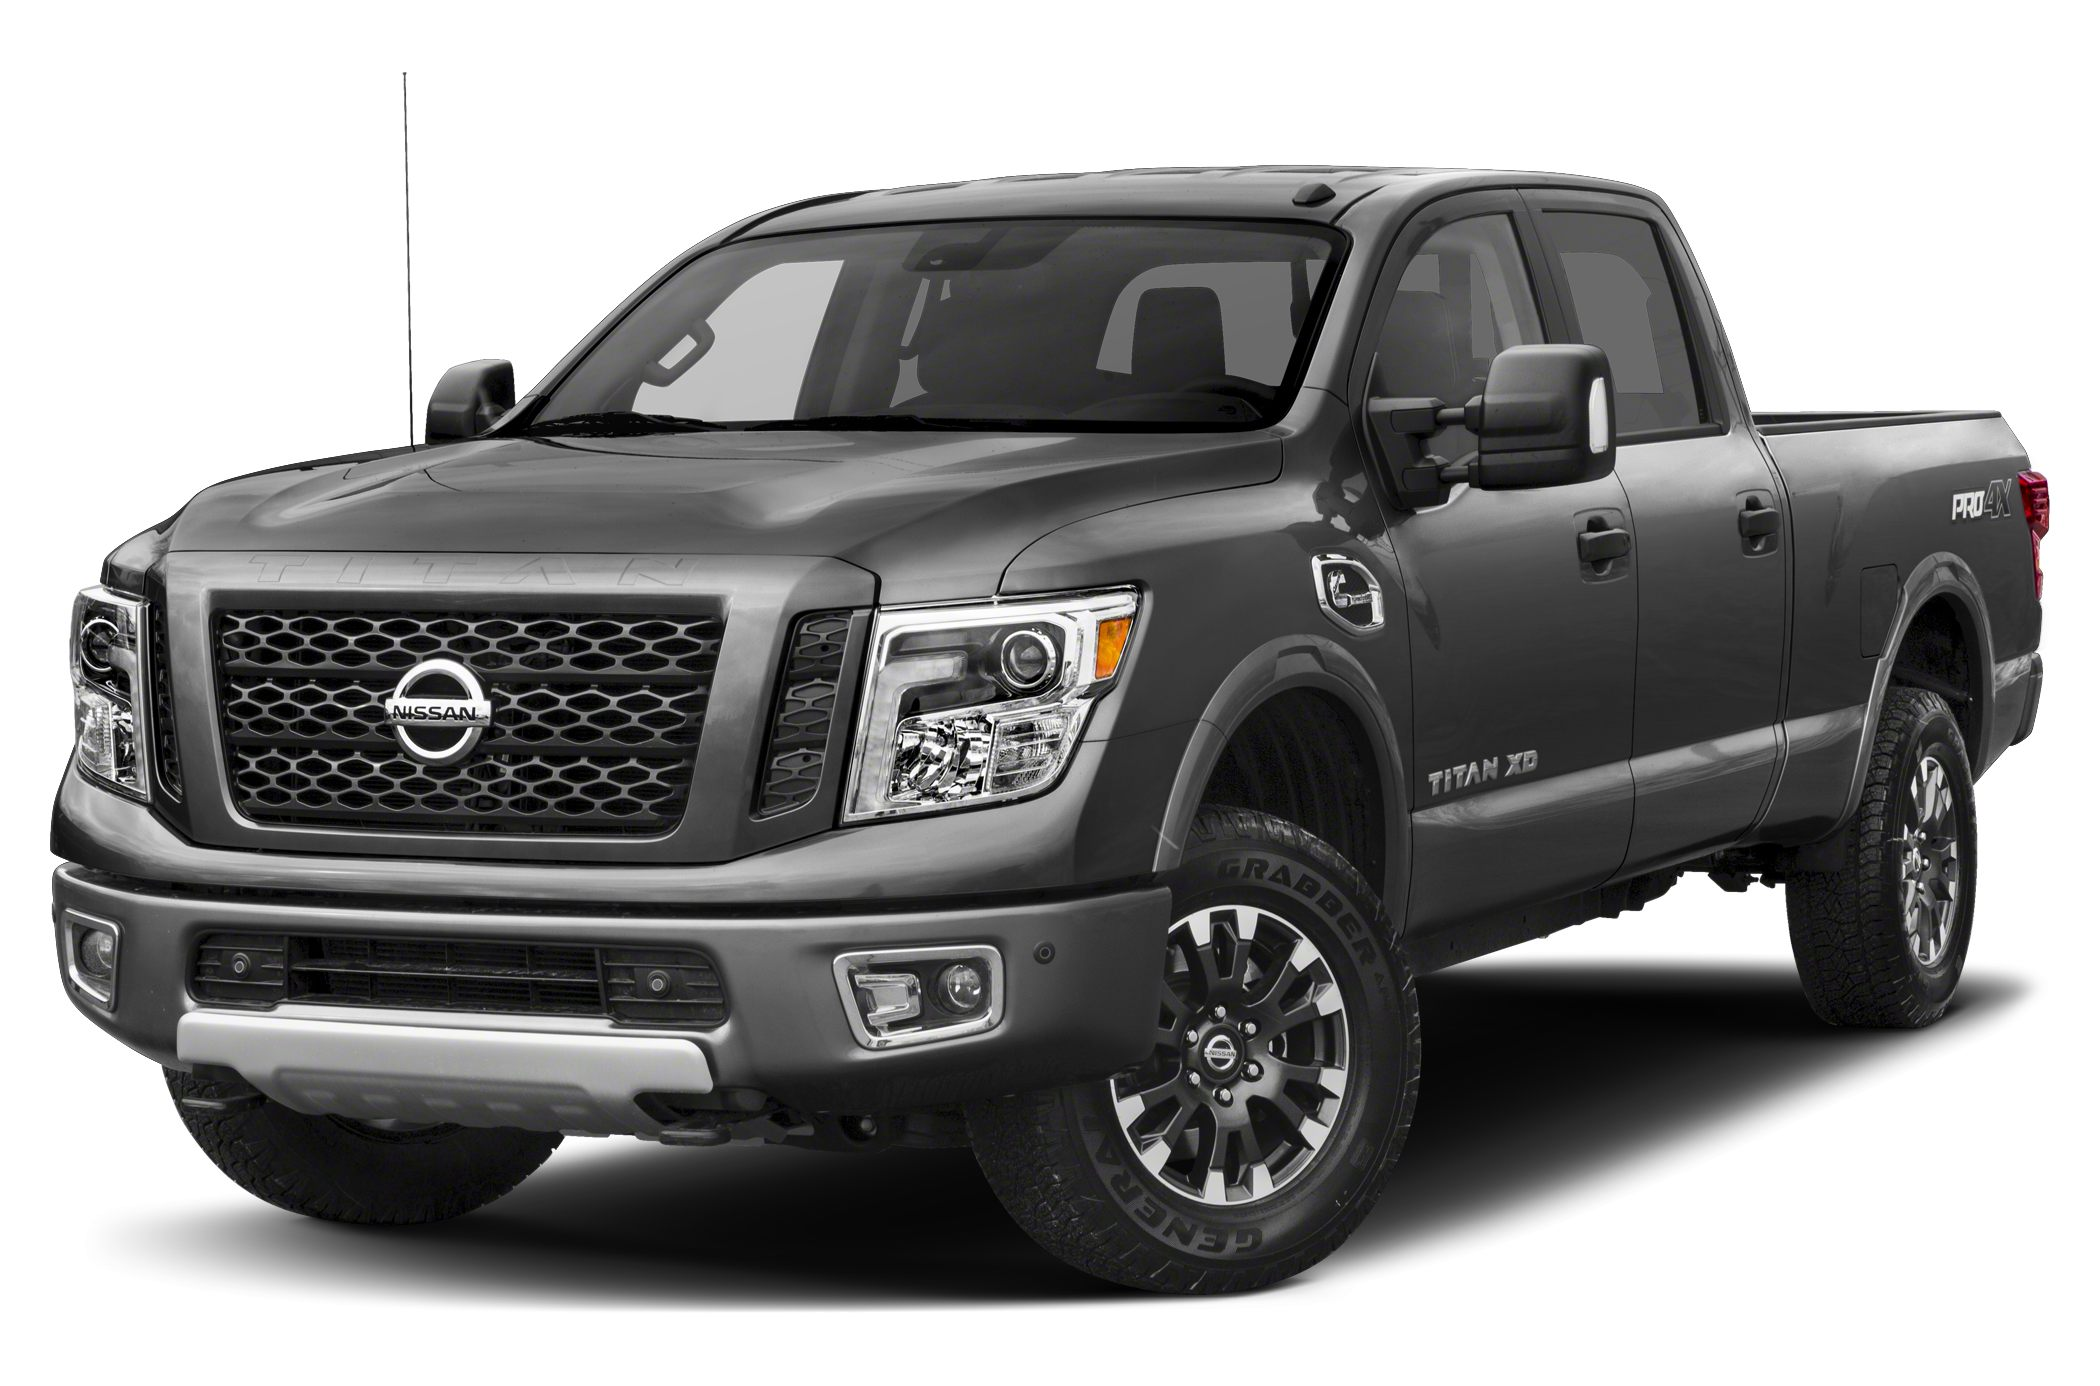 2016 Nissan Titan Xd Pro 4x Diesel 4dr 4x4 Crew Cab 151 6 In Wb Specs And Prices